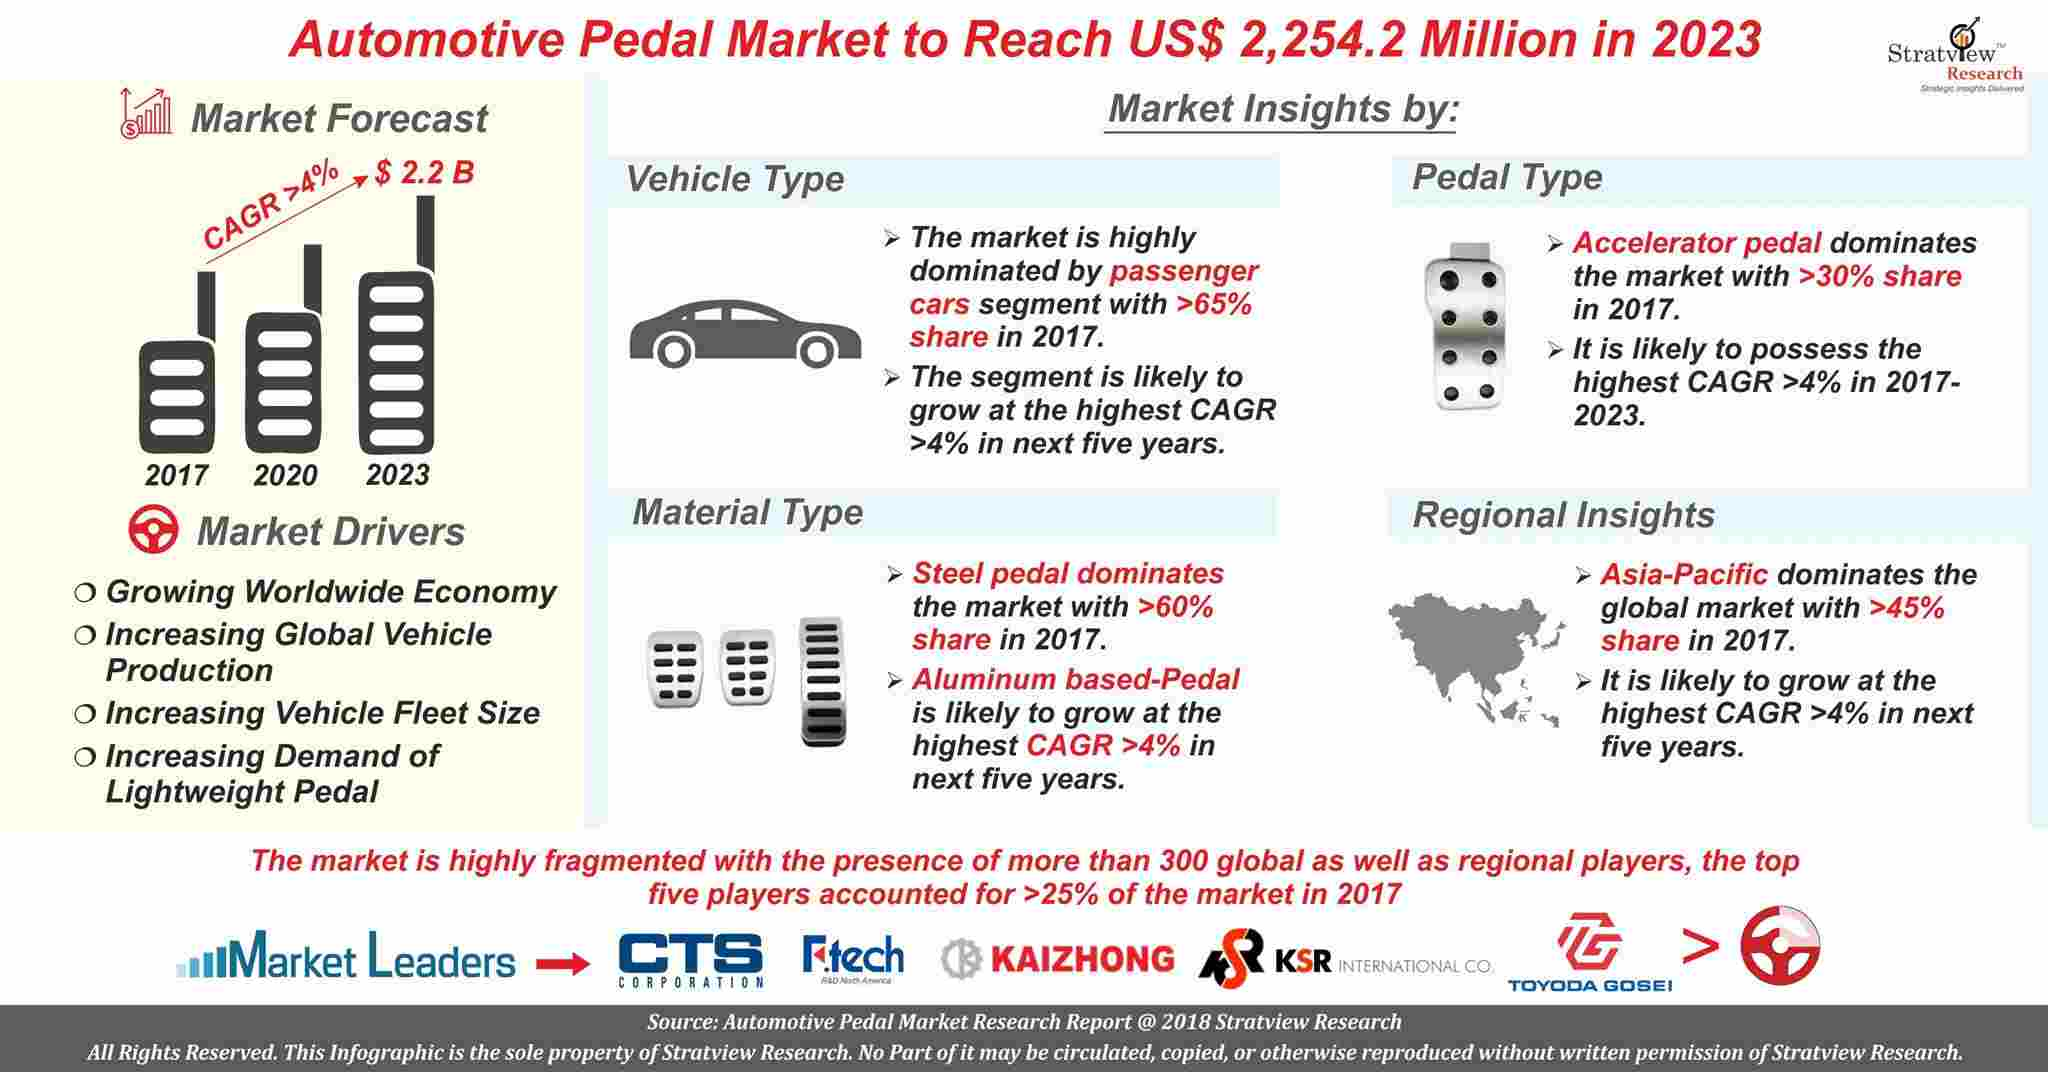 Automotive Pedal Market Analysis